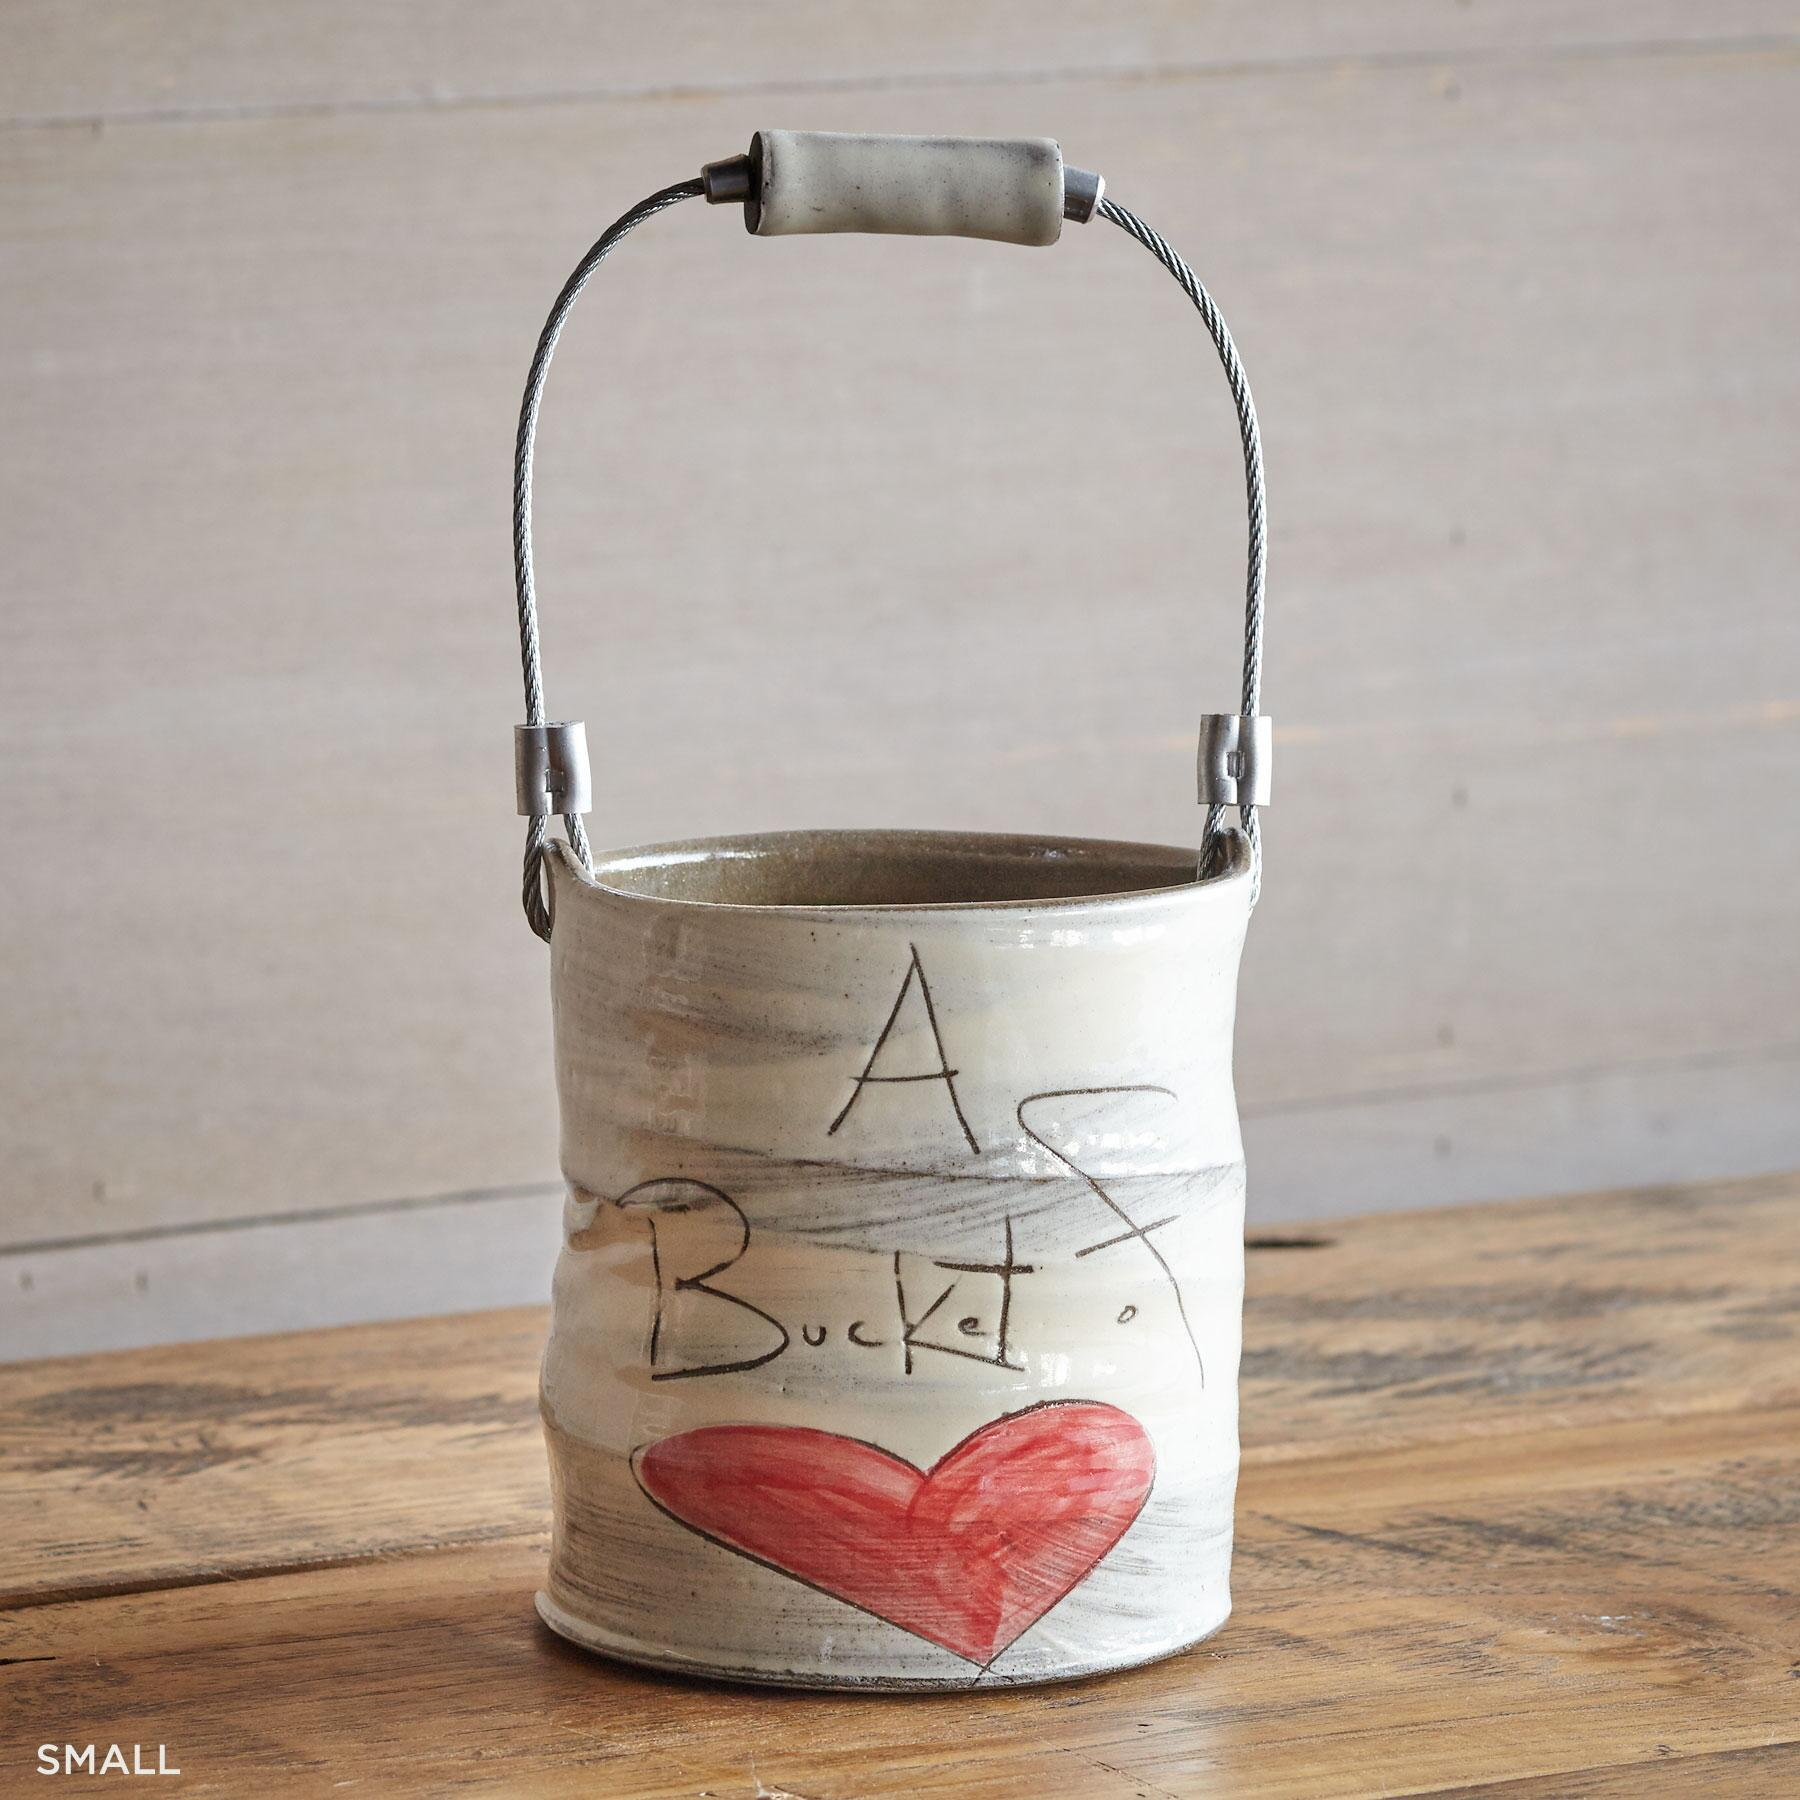 SENTIMENT BUCKET OF LOVE: View 2